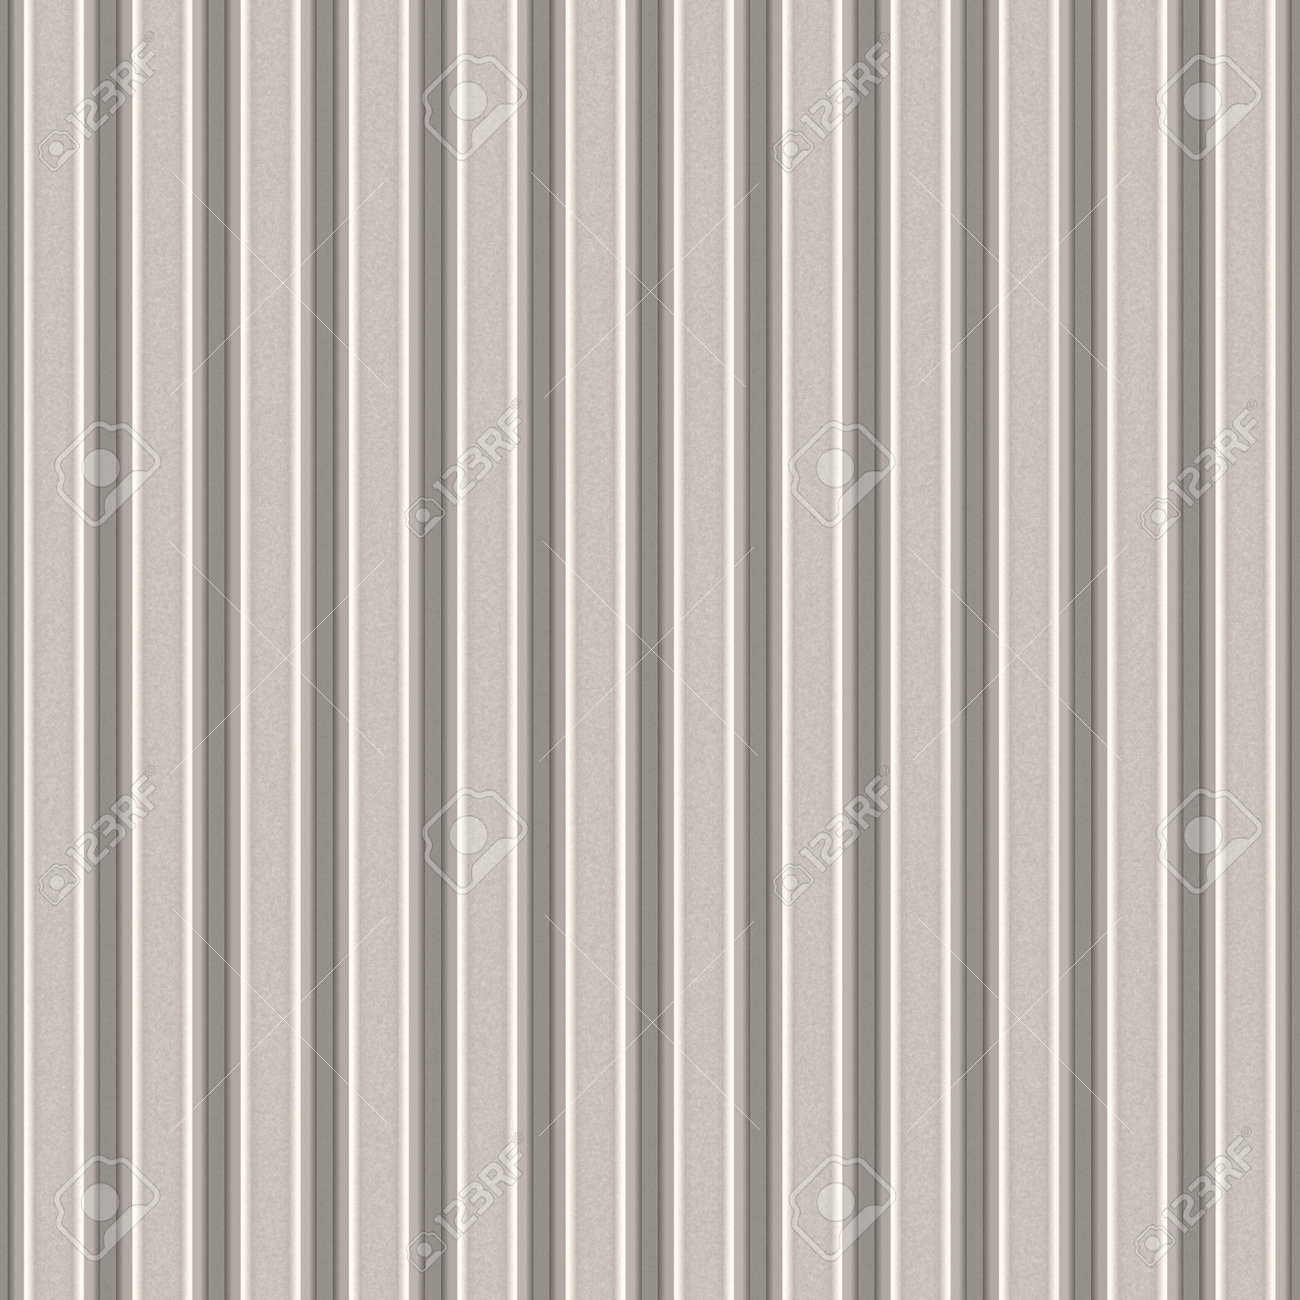 Corrugated Metal Seamless Texture Tile Stock Photo   14024329. Corrugated Metal Seamless Texture Tile Stock Photo  Picture And